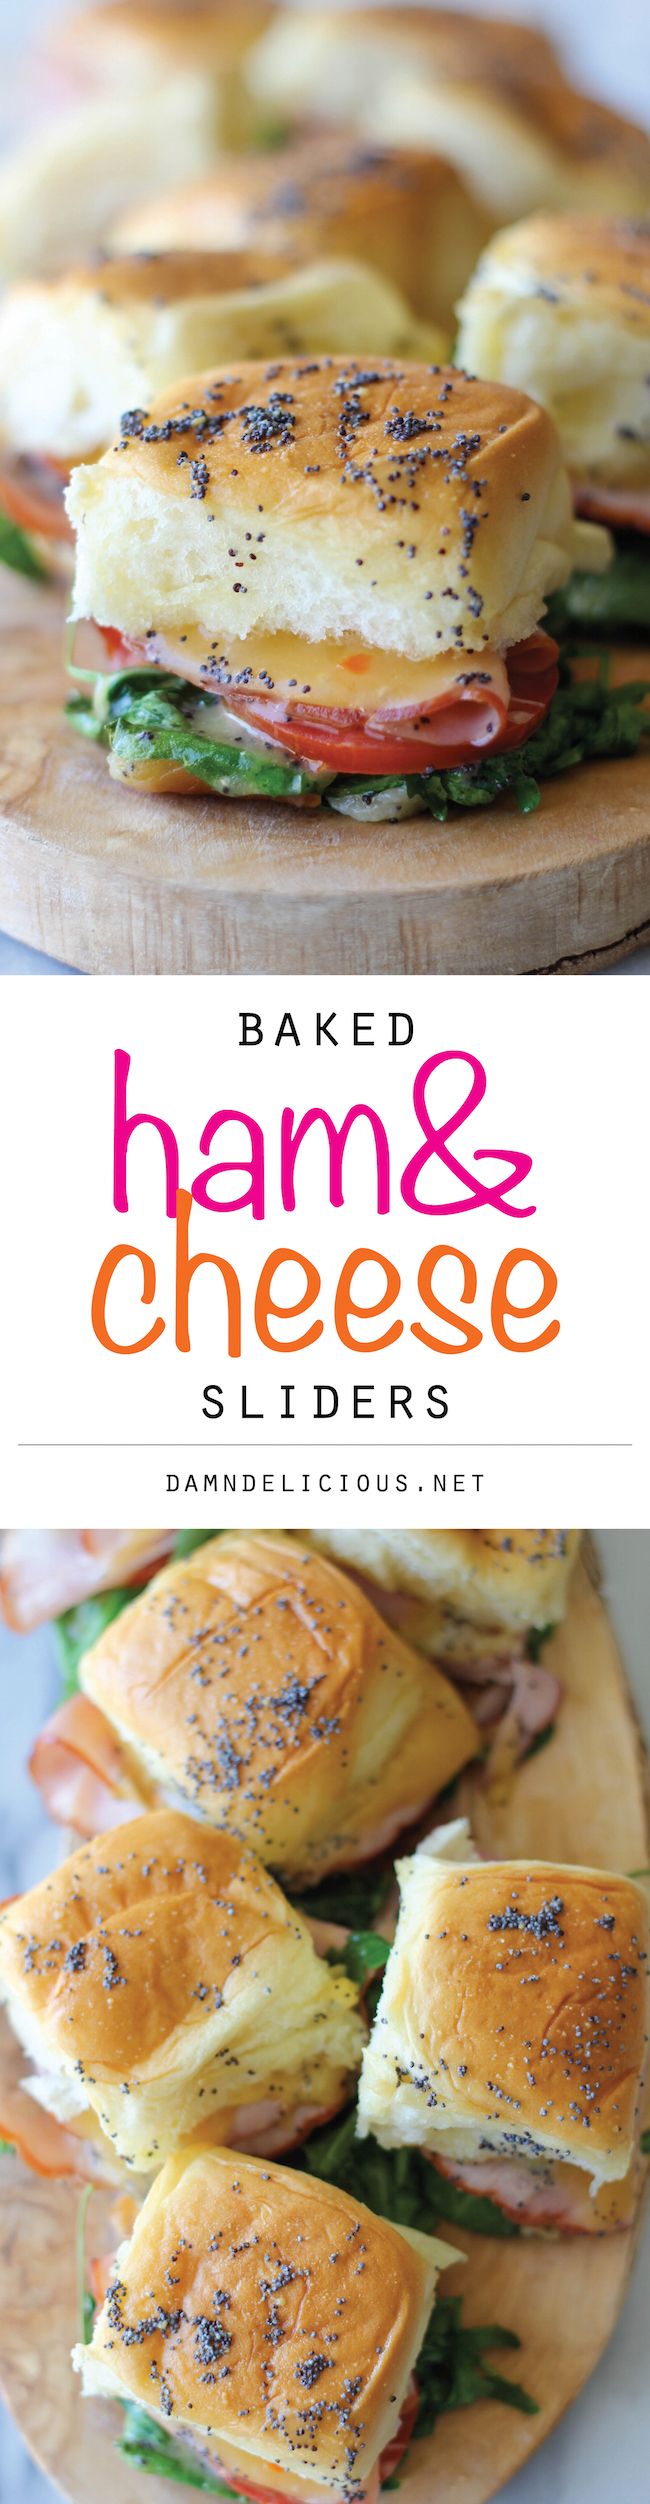 Baked Ham and Cheese Sliders - These sliders are popped in the oven until they're completely buttery and oozing with melted cheese!